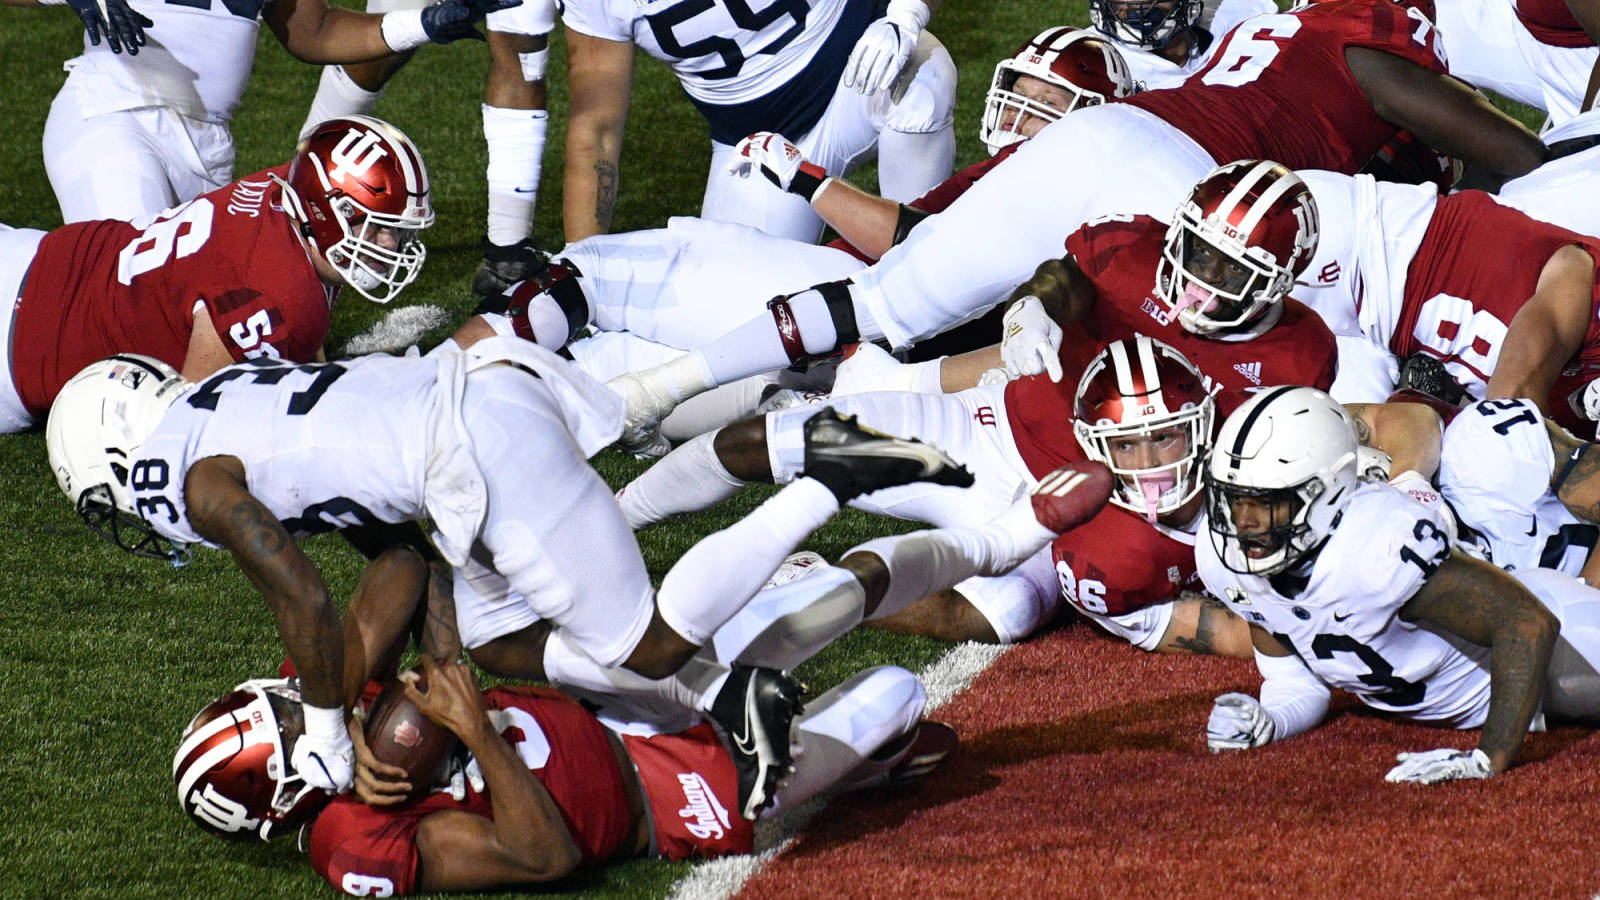 Indiana upsets Penn State after favorable call on Michael Penix Jr. two-point conversion